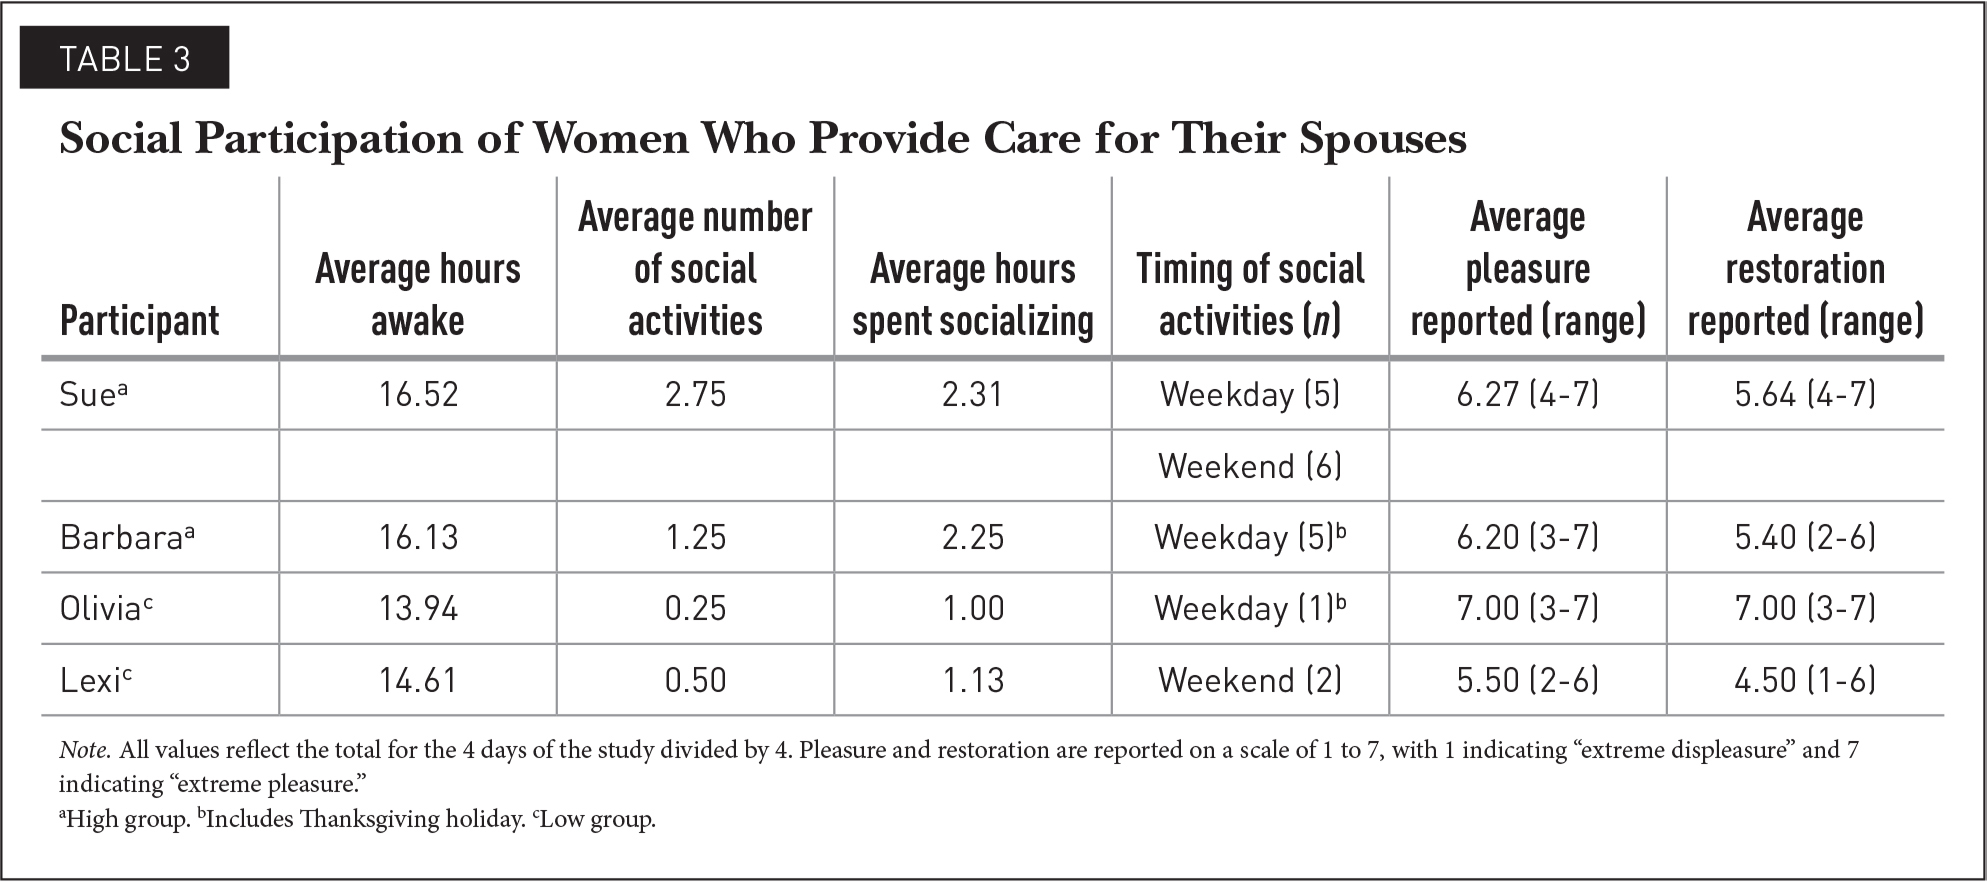 Social Participation of Women Who Provide Care for Their Spouses